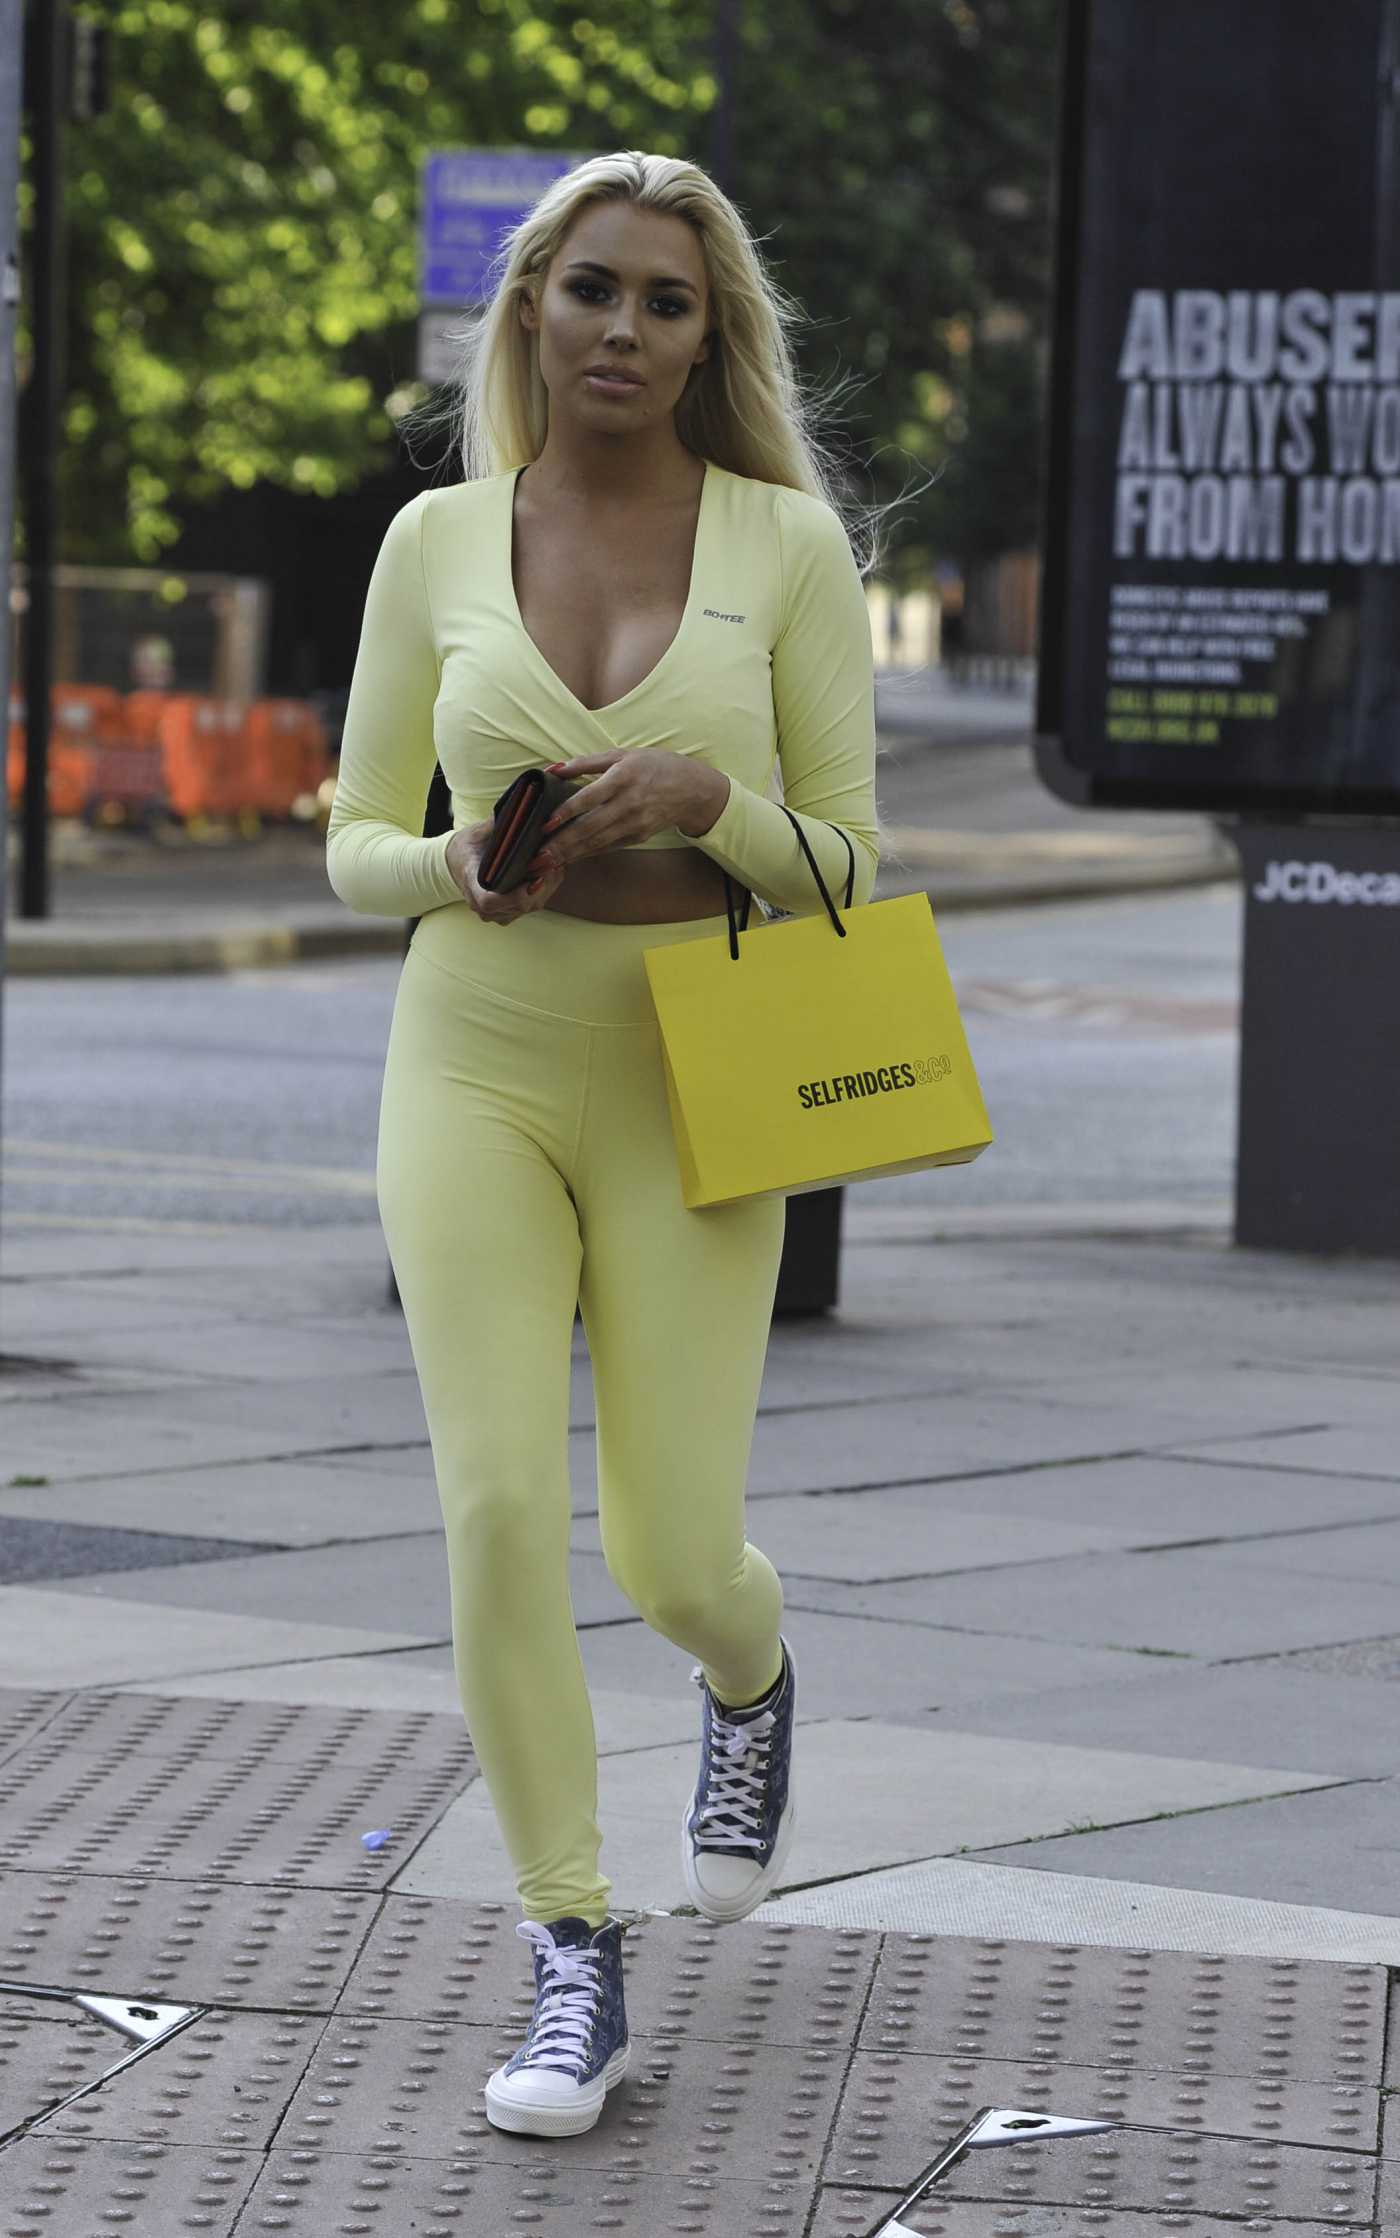 Shannen Reilly McGrath in a Yellow Gym Clothes Was Seen Out in Manchester 06/30/2020